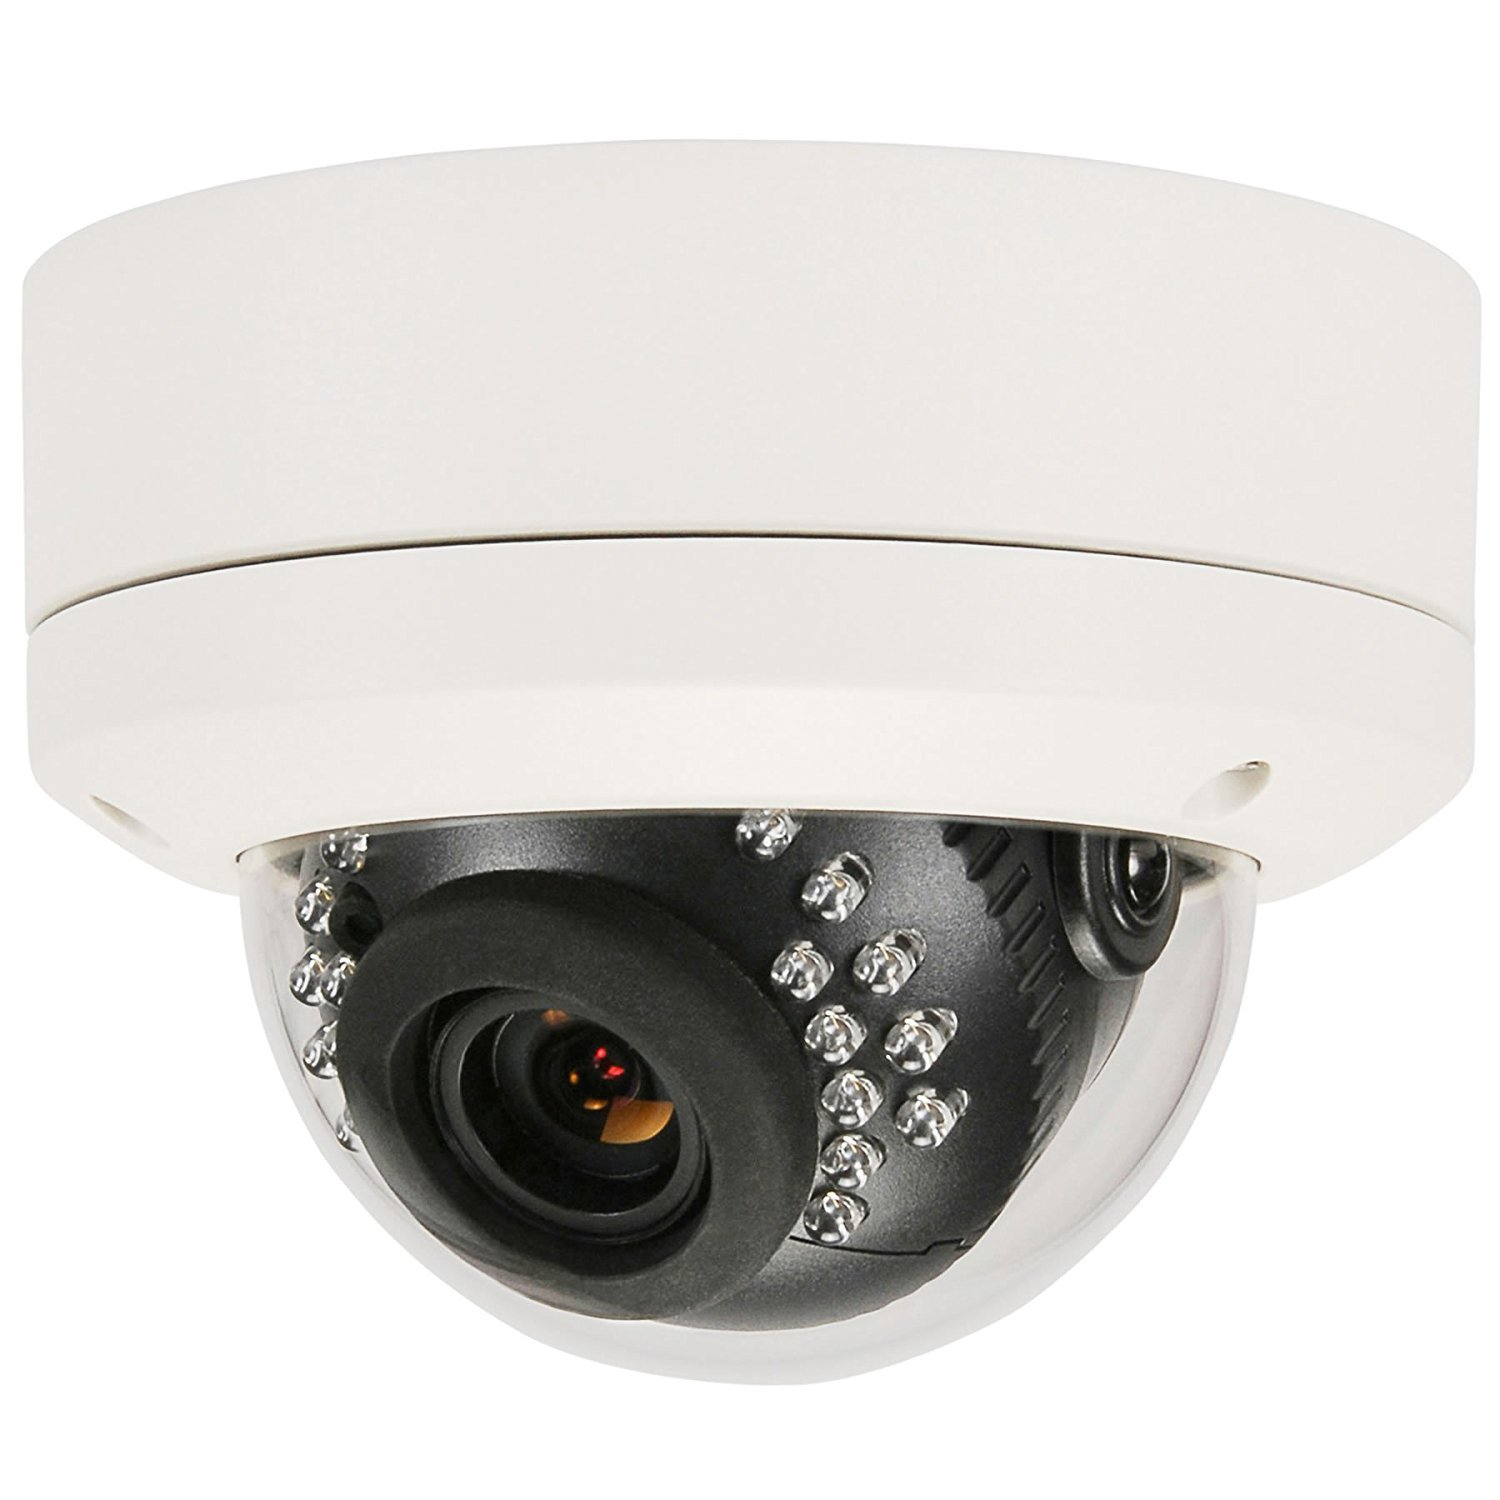 HDView (Business Series) 3MP Megapixel IP Network Camera ONVIF PoE, SONY Sensor, 2.8mm Wide Angle Lens 3-Axis, Vandalproof Dome